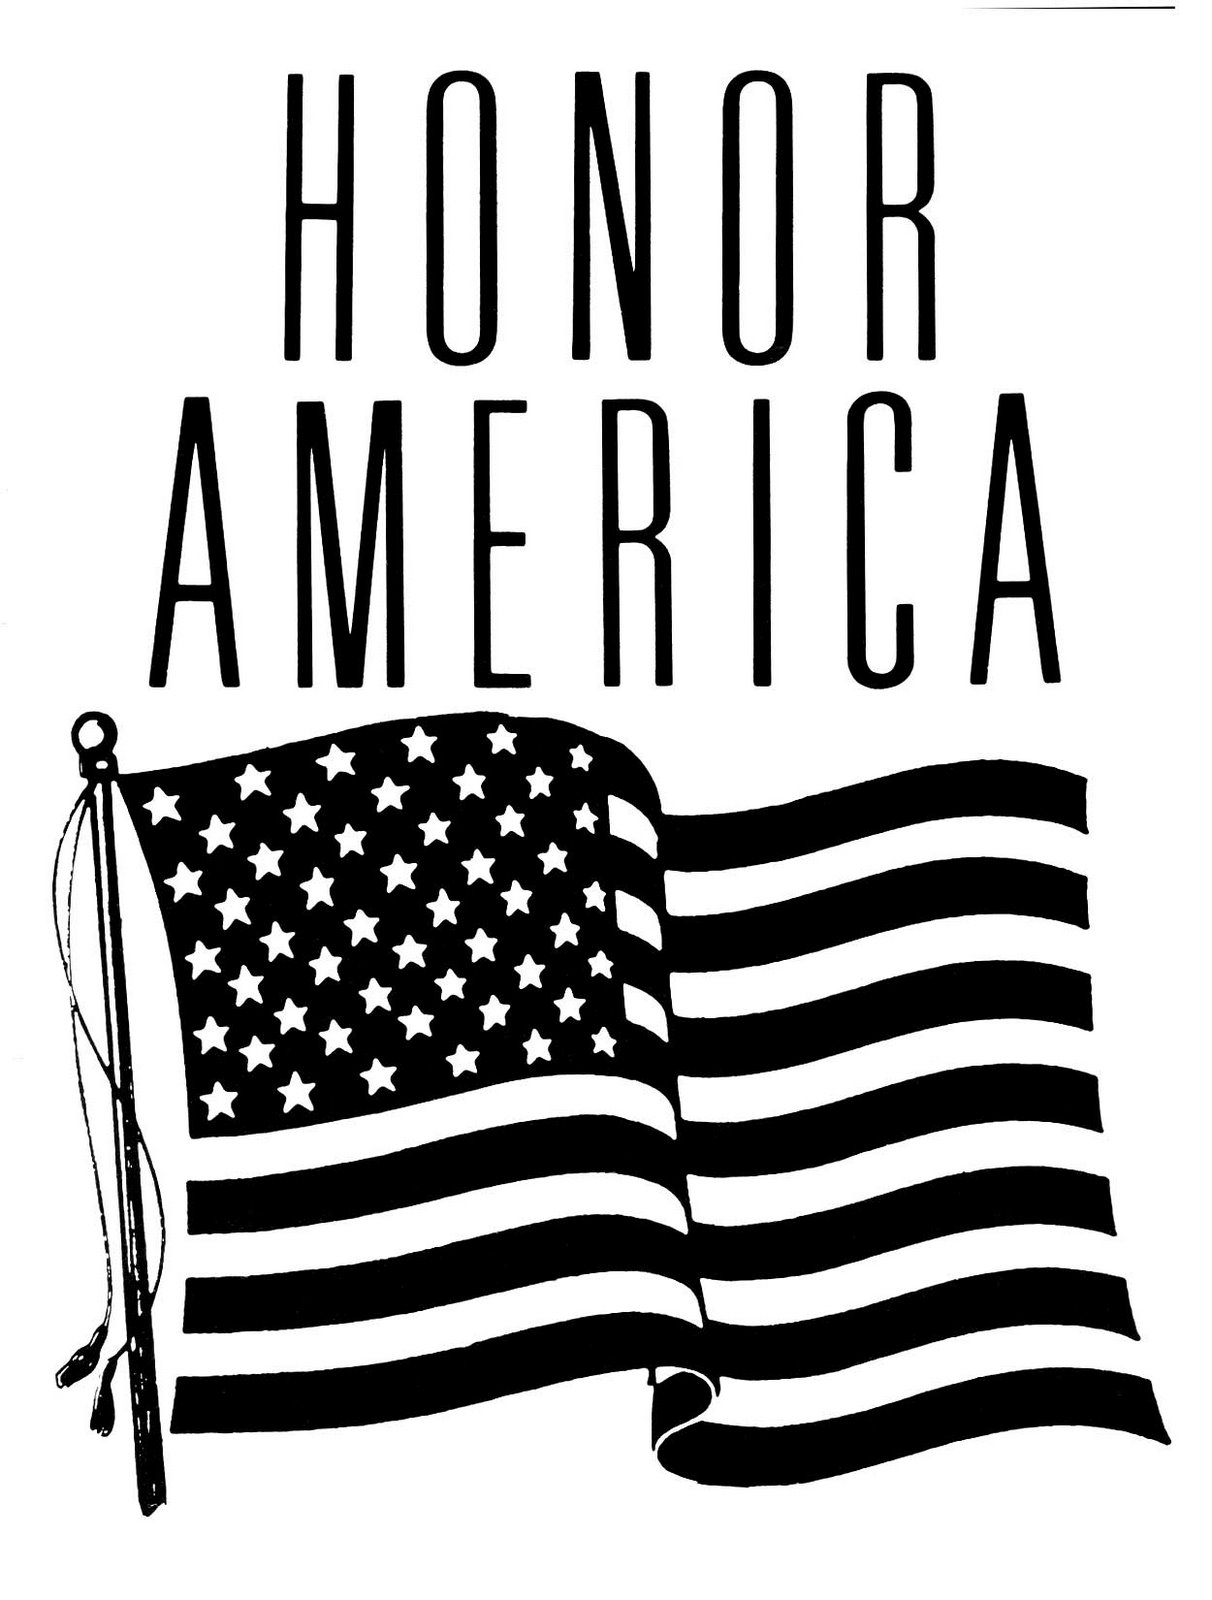 American flag student clipart.